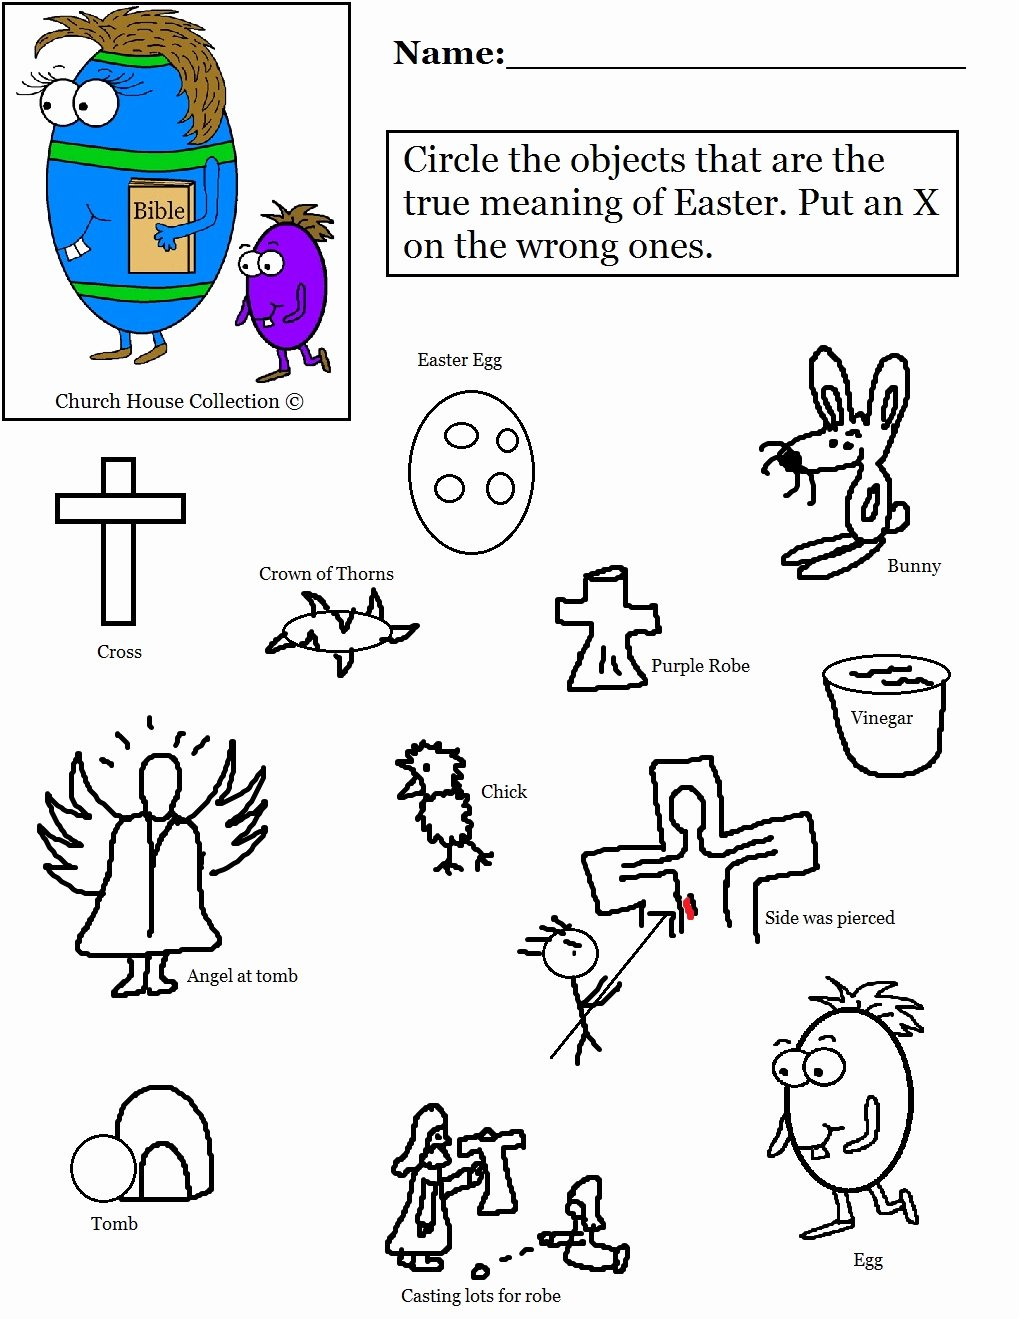 Christian Easter Worksheets for Preschoolers Unique Church House Collection Blog Easter Egg with Bible Worksheet